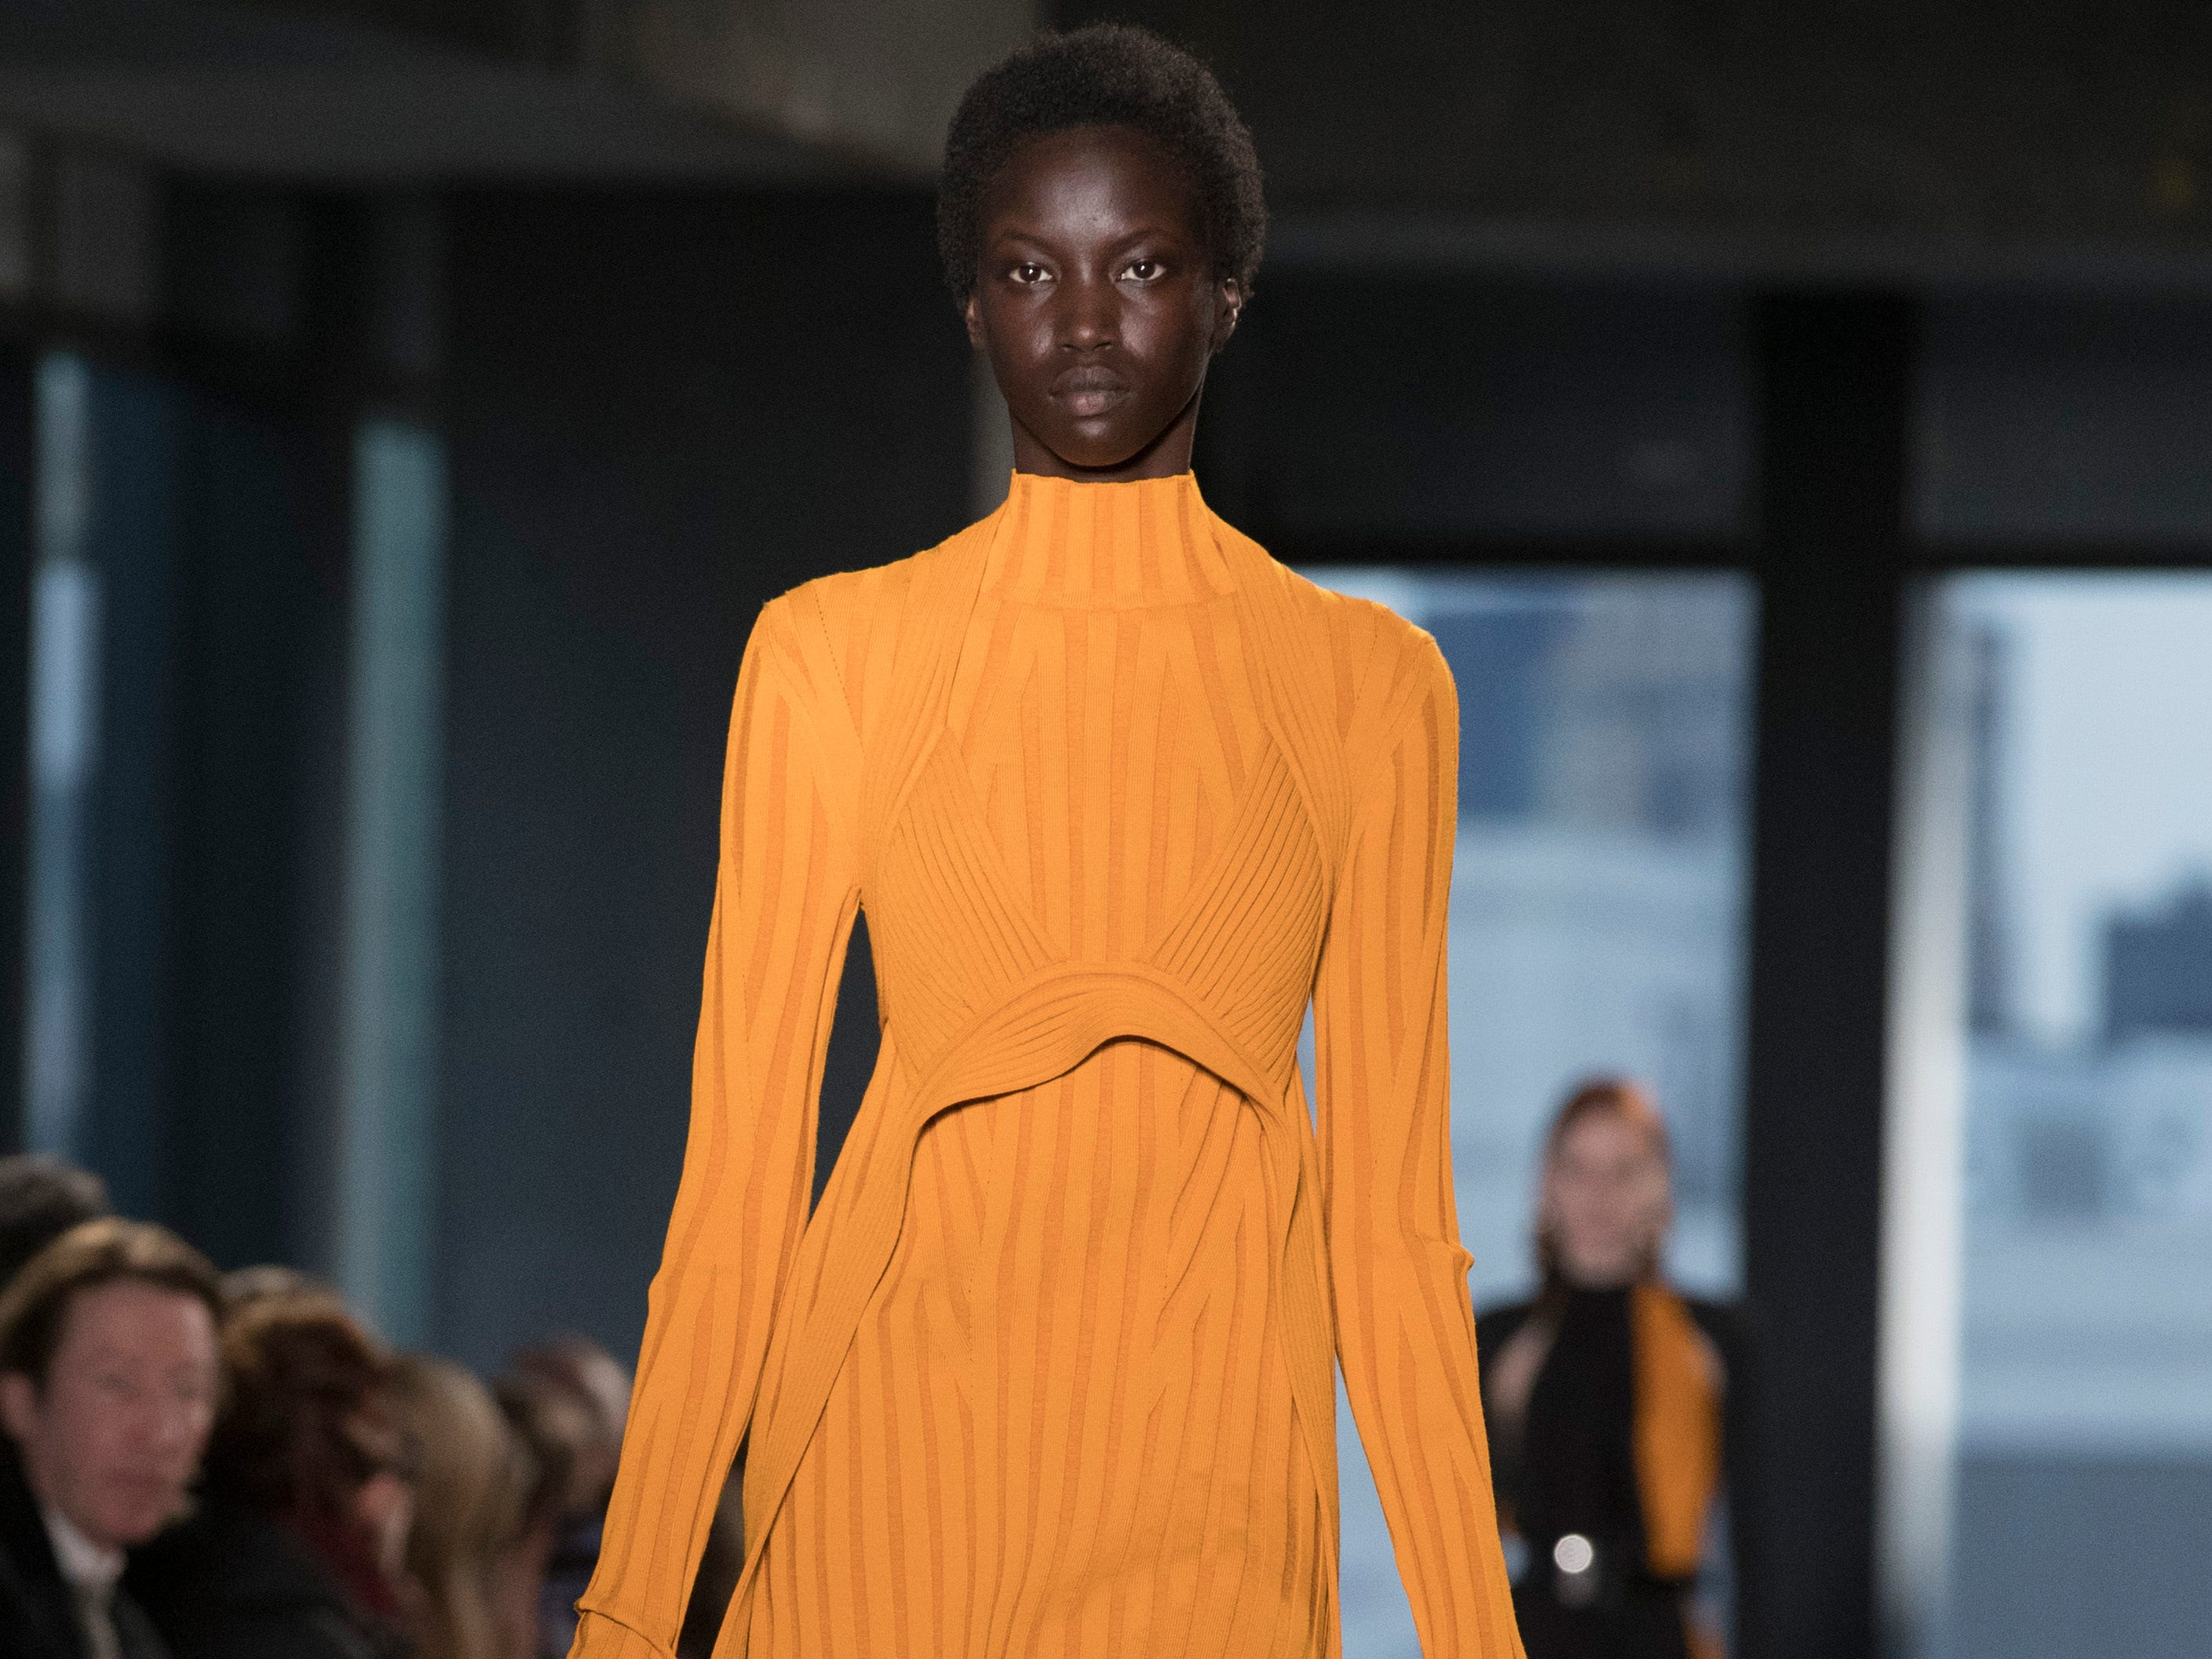 This ribbed Proenza Schouler sweater dress kept to the high-necked, long-sleeved theme but injected color and a bikini-style bodice detail.